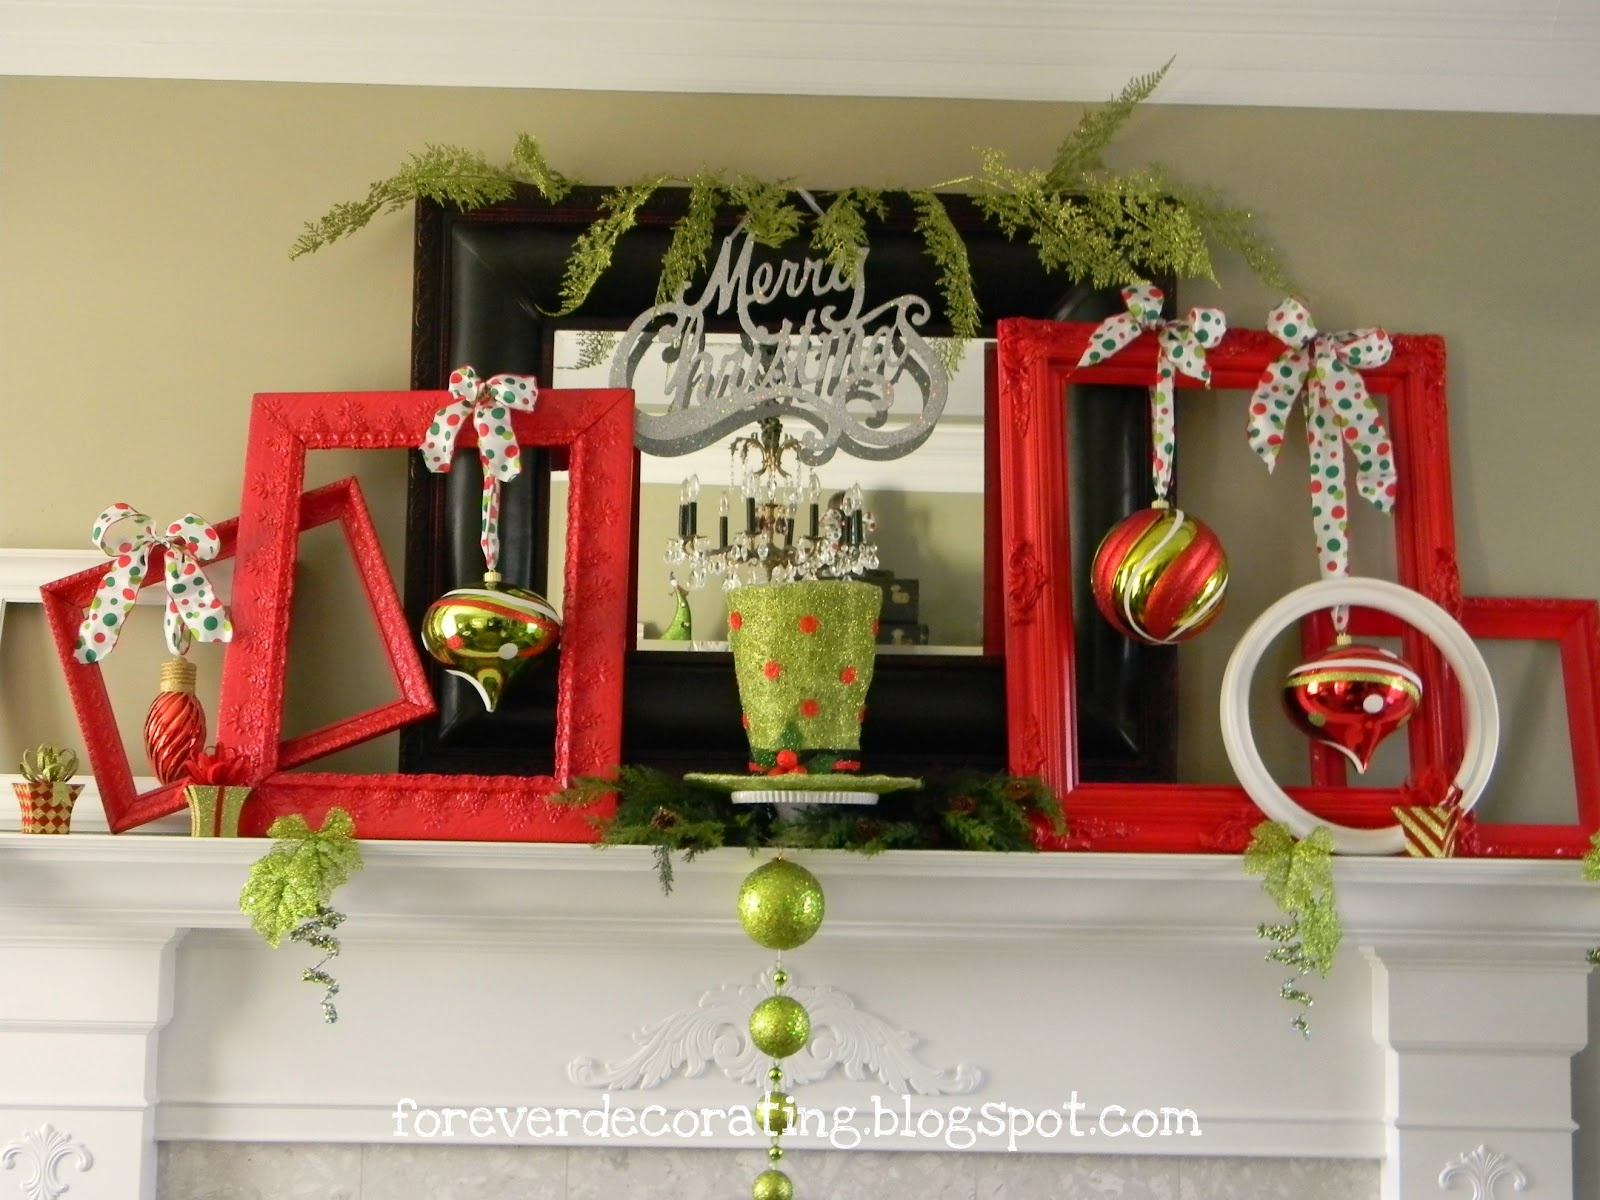 Forever Decorating!: Hand Painted Christmas